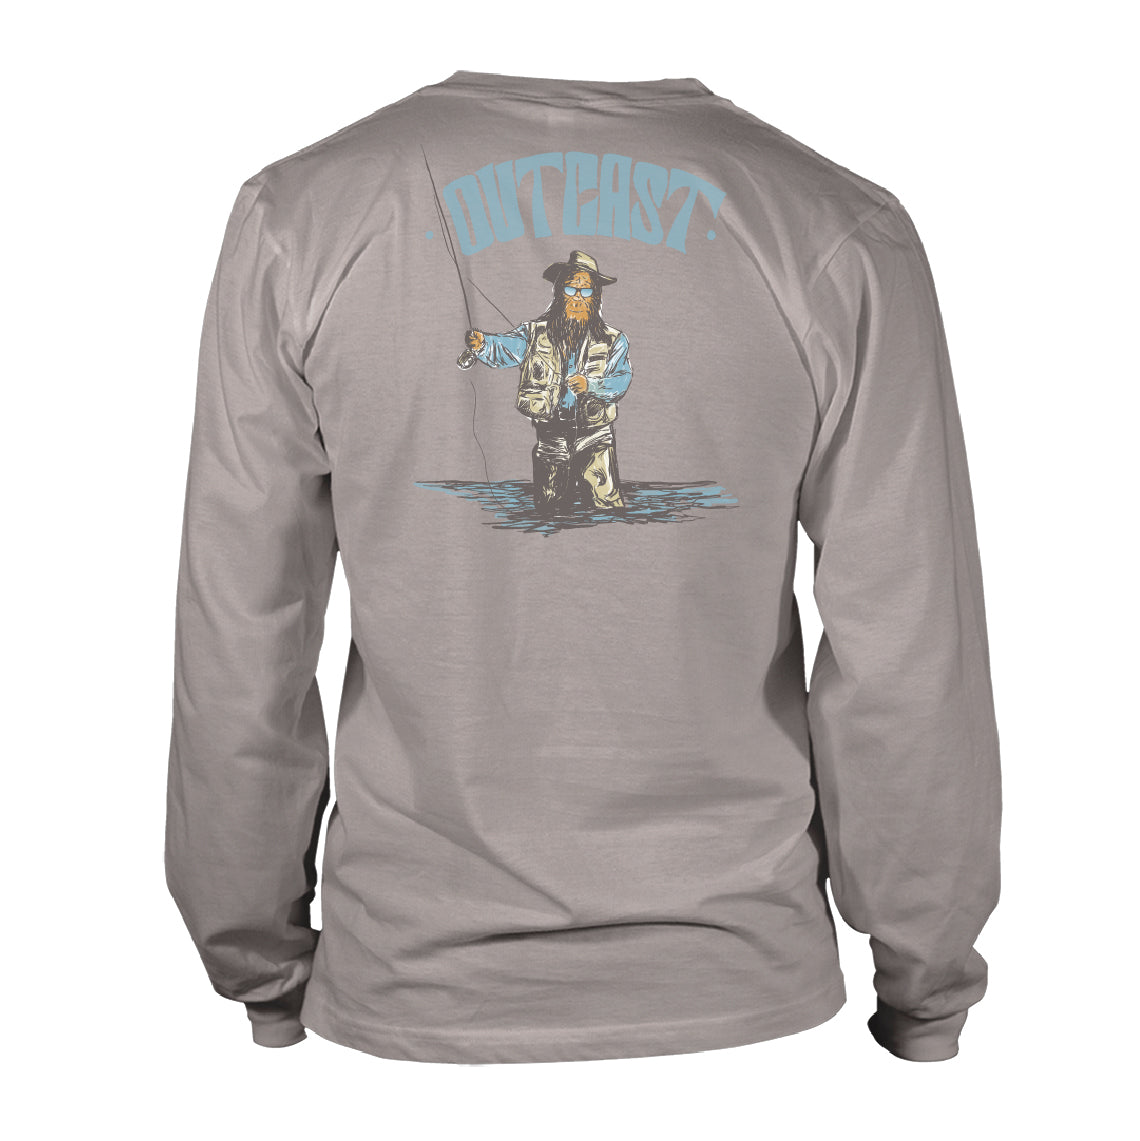 Men's Long Sleeve Whimsical Tee - Outcast - Granite